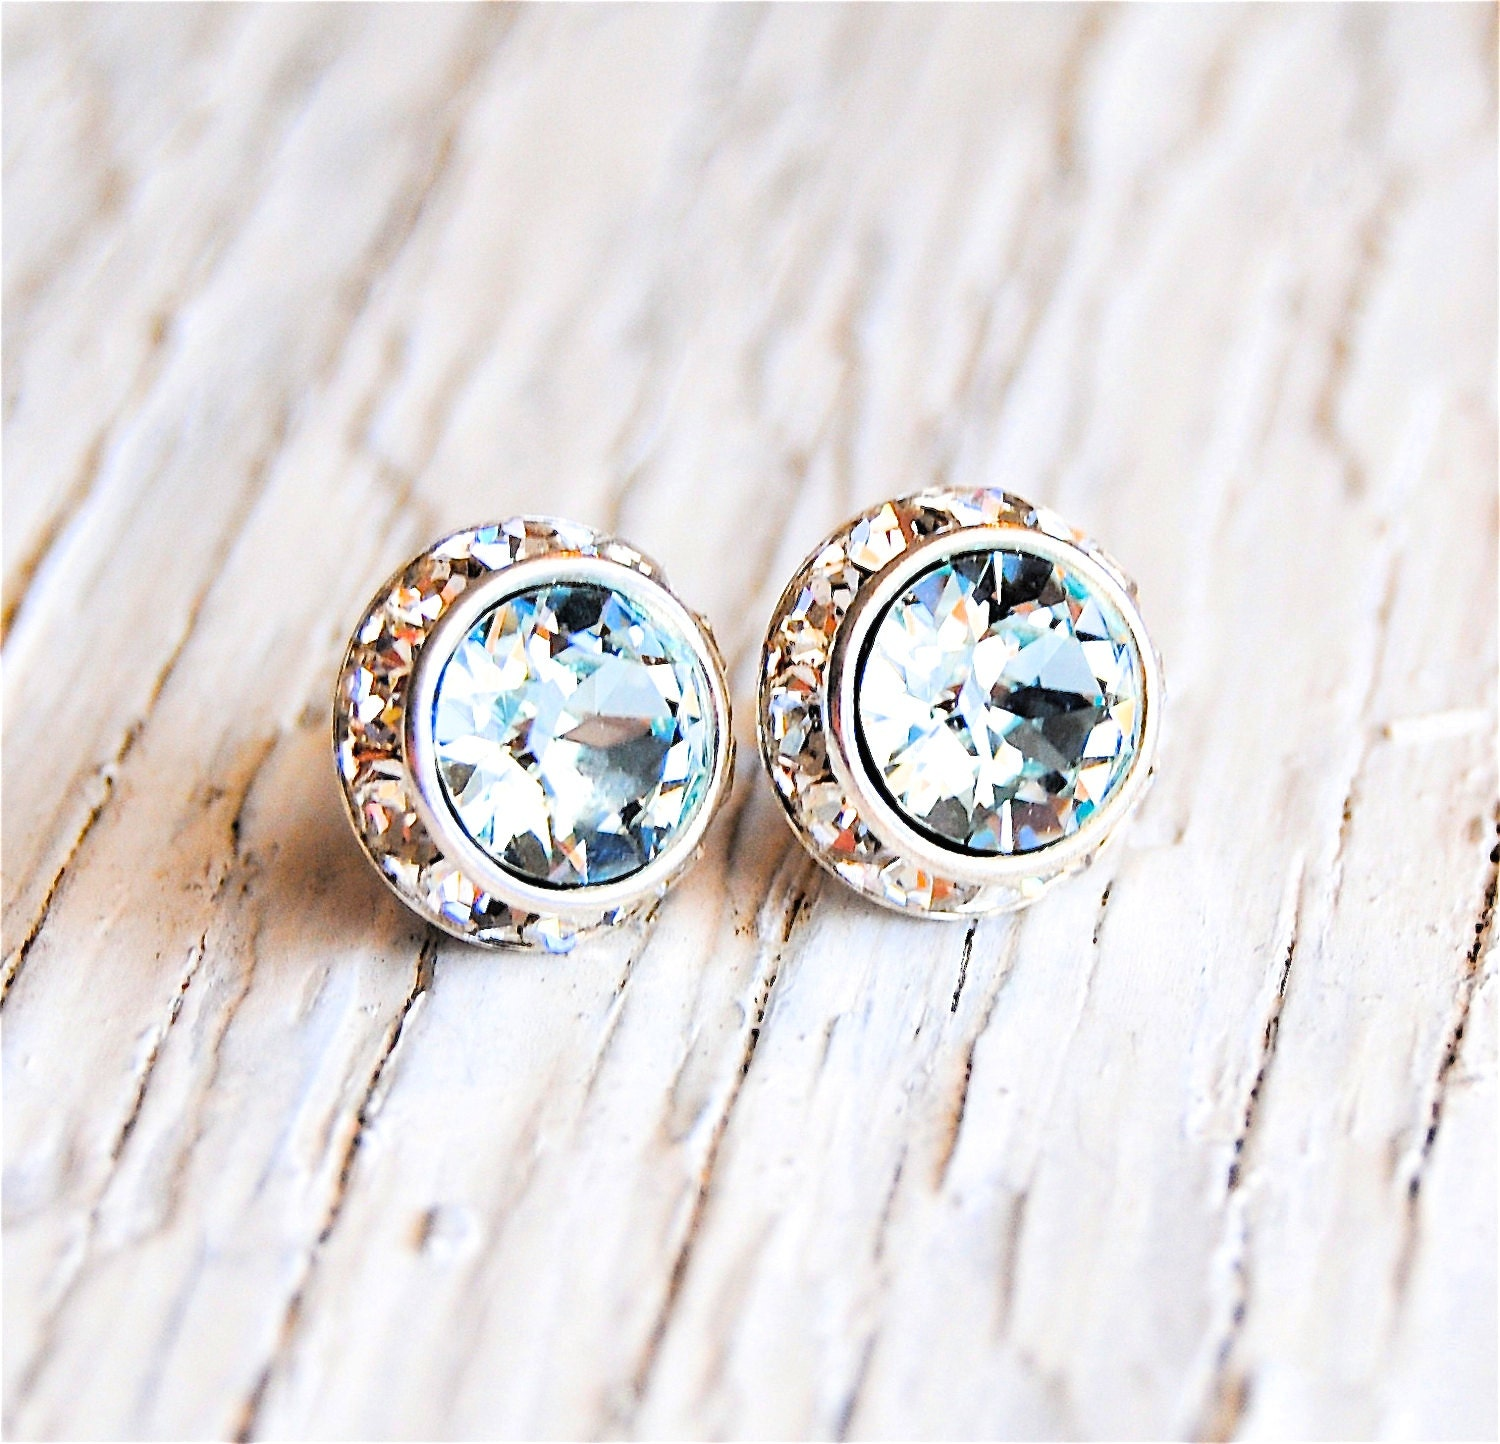 p marine white earrings large stud gold diamond context aquamarine aqua